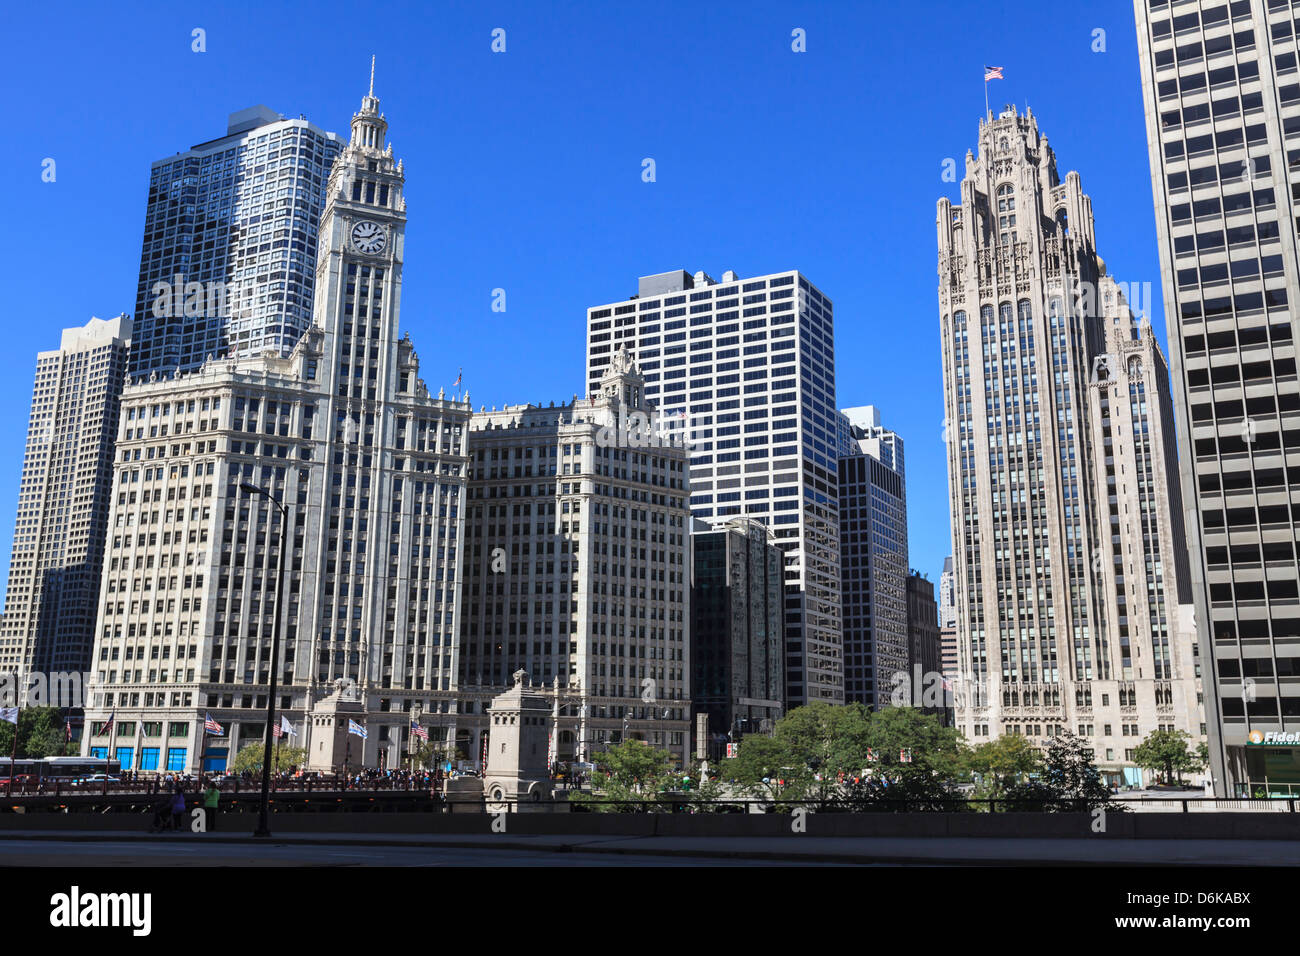 Wrigley Building and Tribune Tower, Chicago, Illinois, United States of America, North America - Stock Image